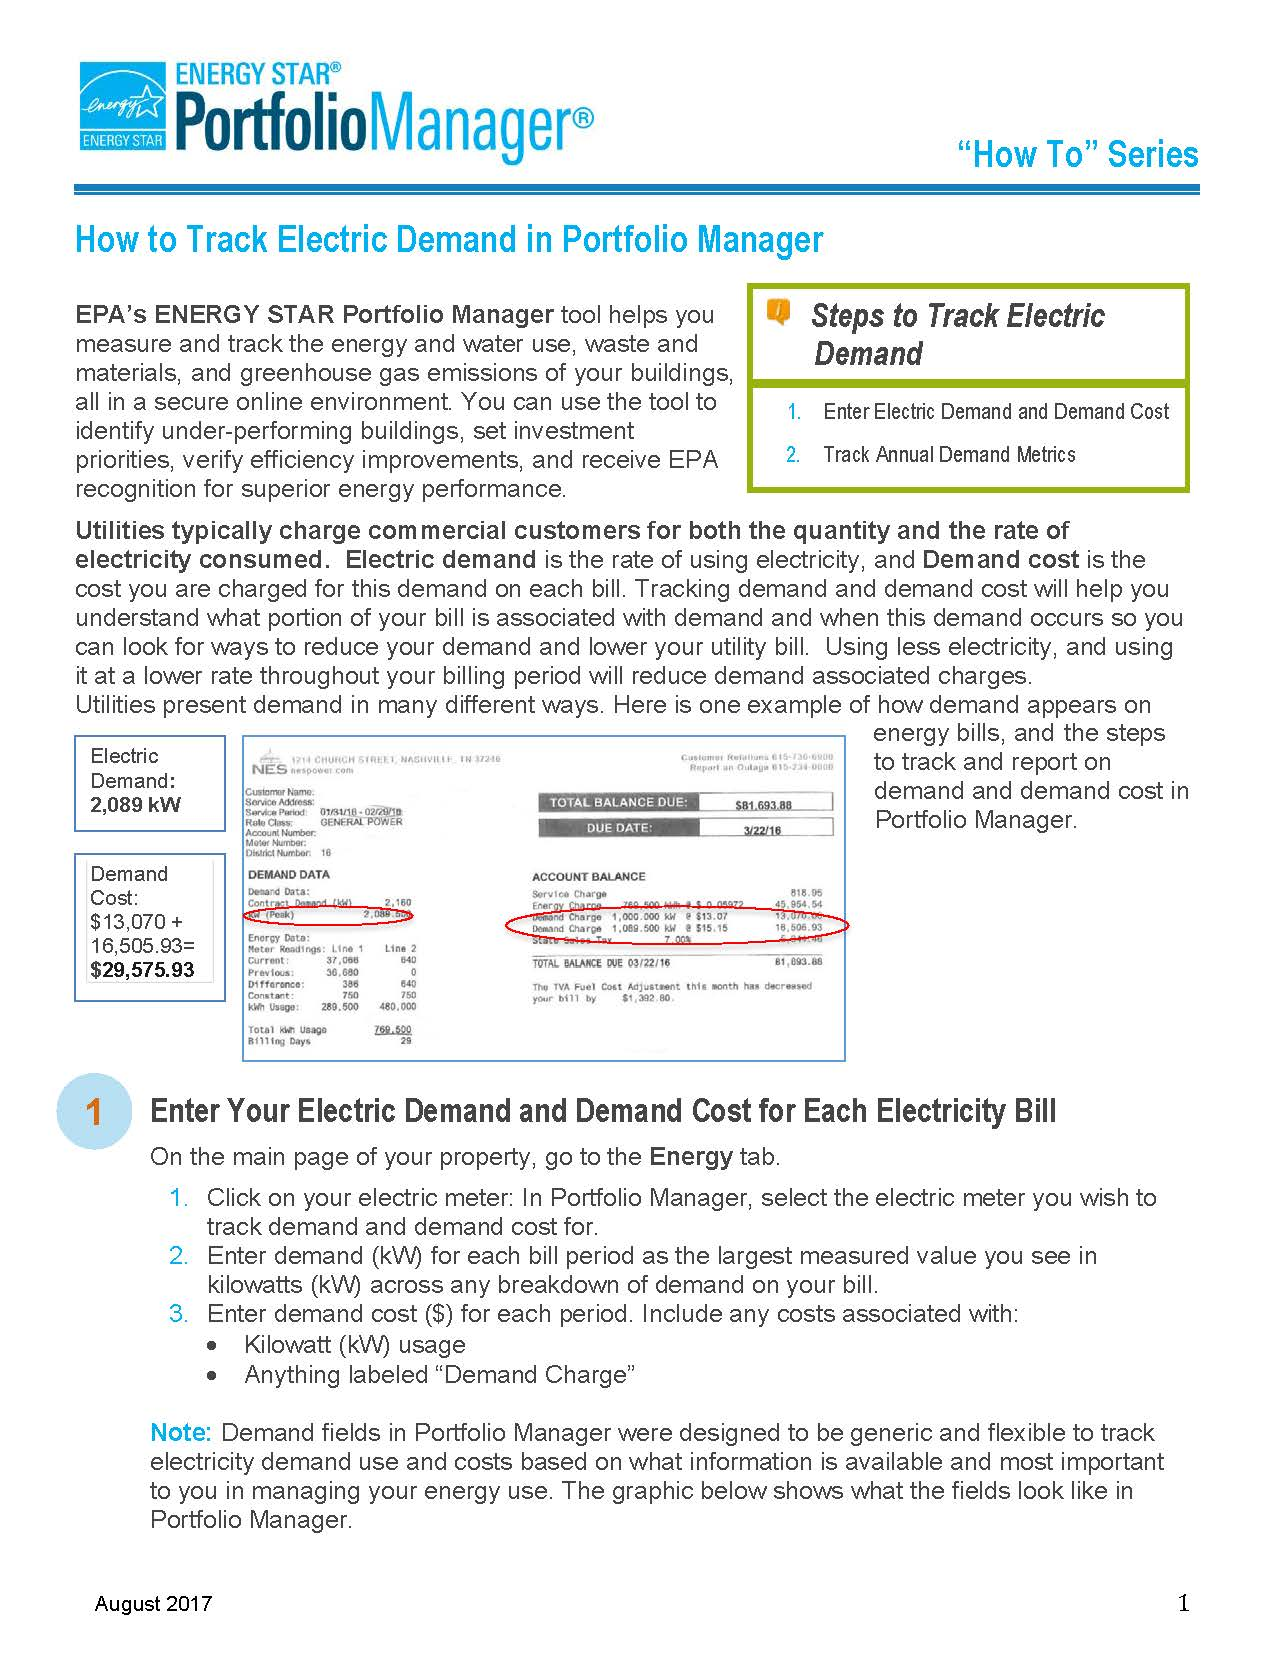 Screenshot of first page of How to Track Electric Demand in Portfolio Manager